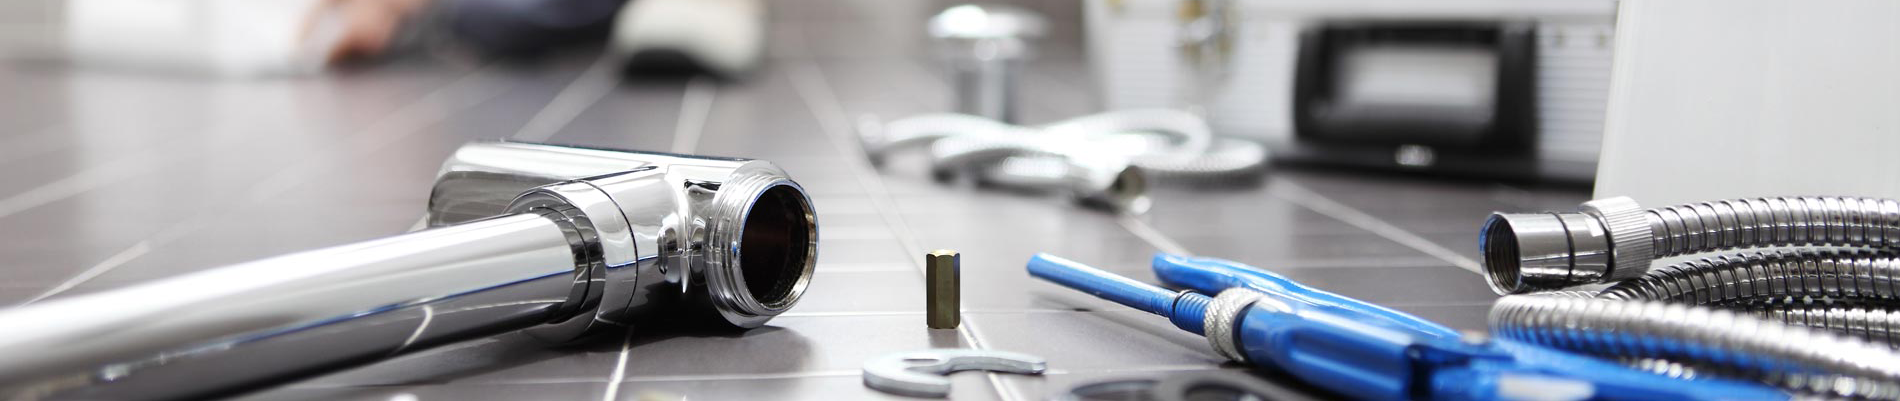 Plumbing Services in Houston, TX